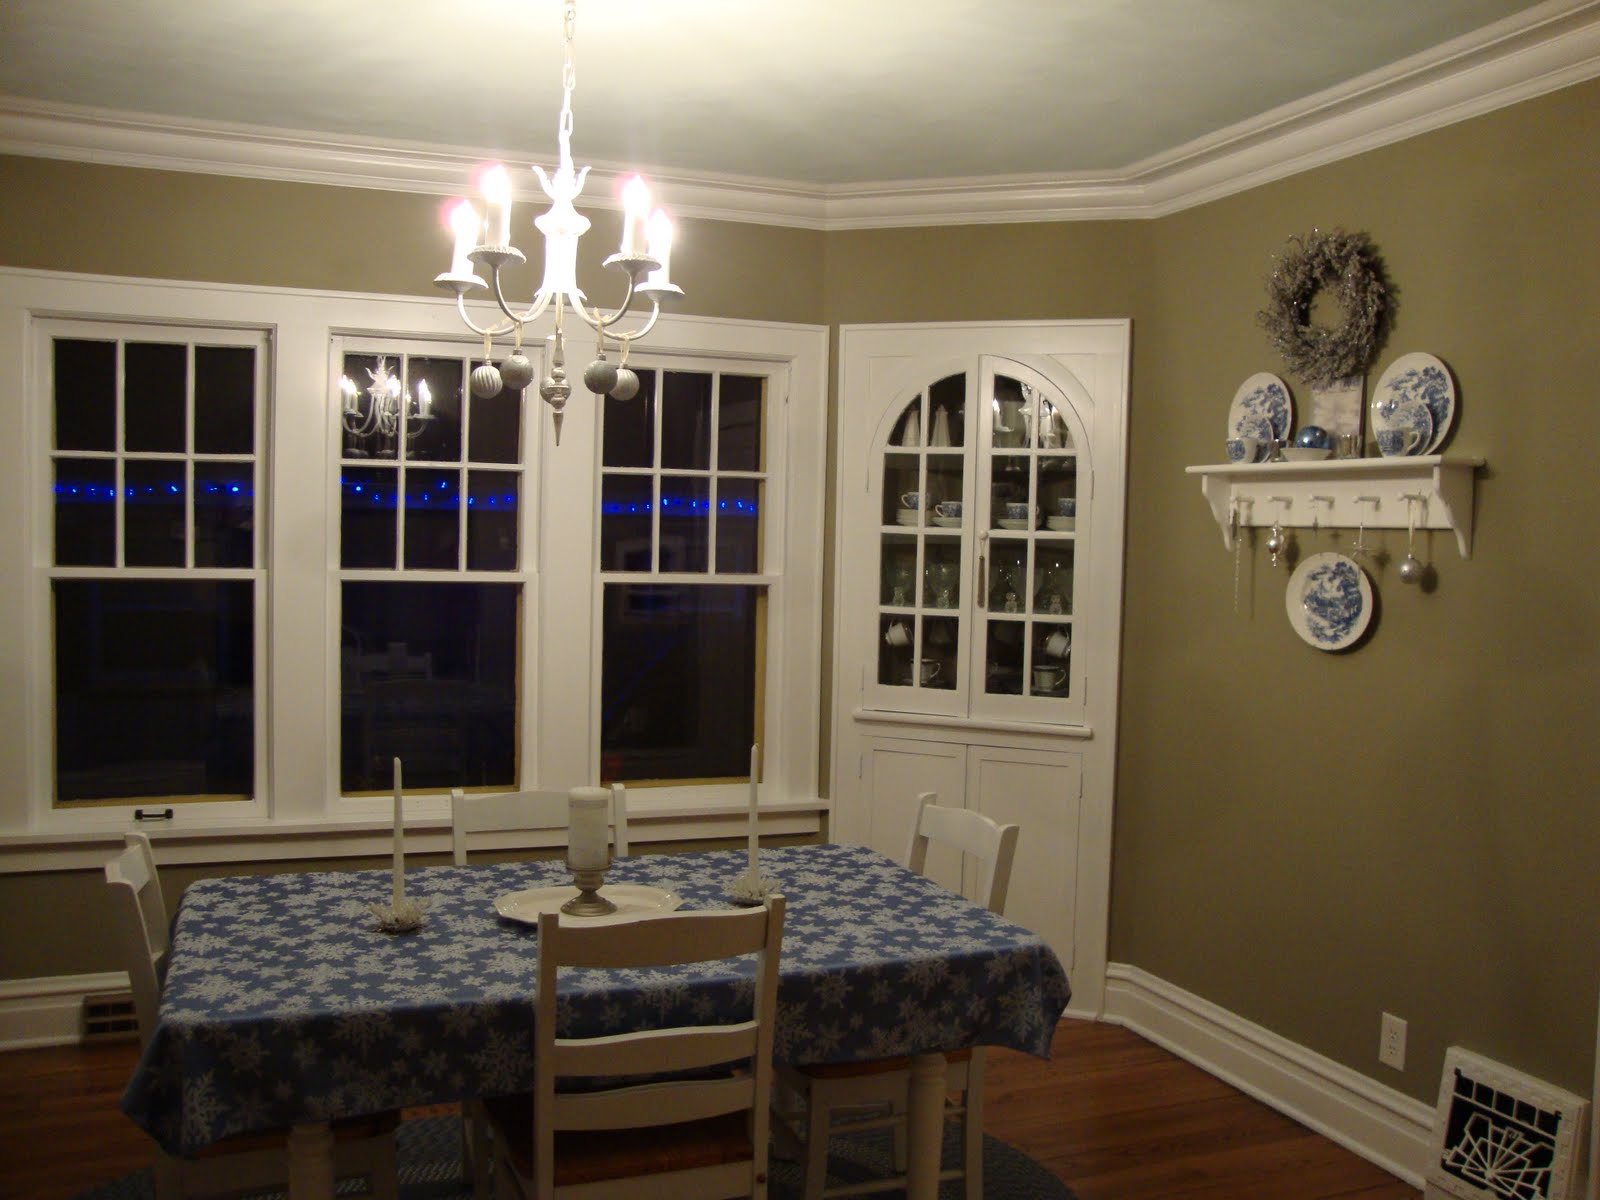 j k homestead dining room decor wall 1